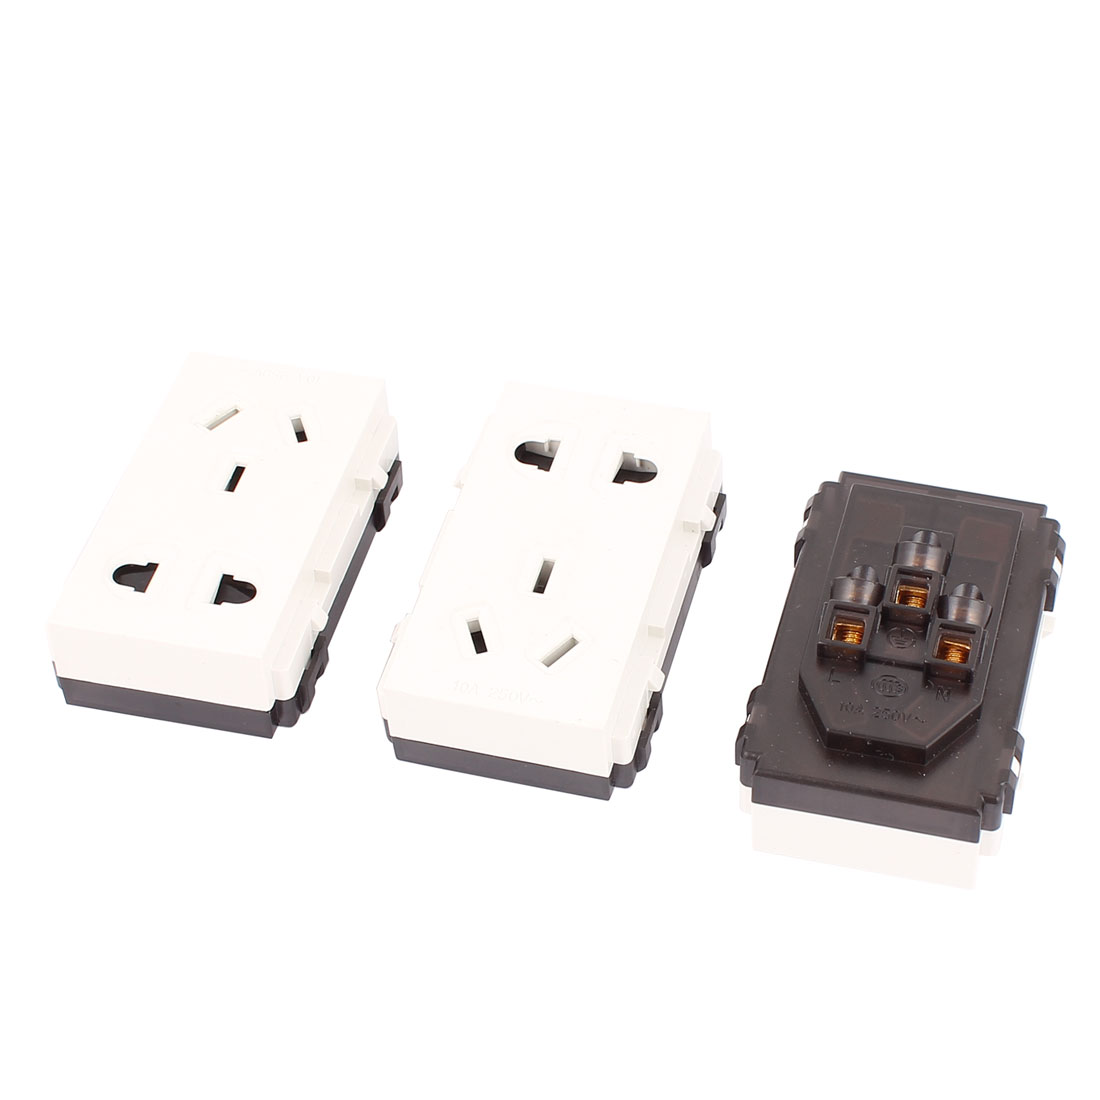 3 Pcs 250VAC 10A AU EU US Socket Electric Power Outlet for 86 Wall Plate Panel